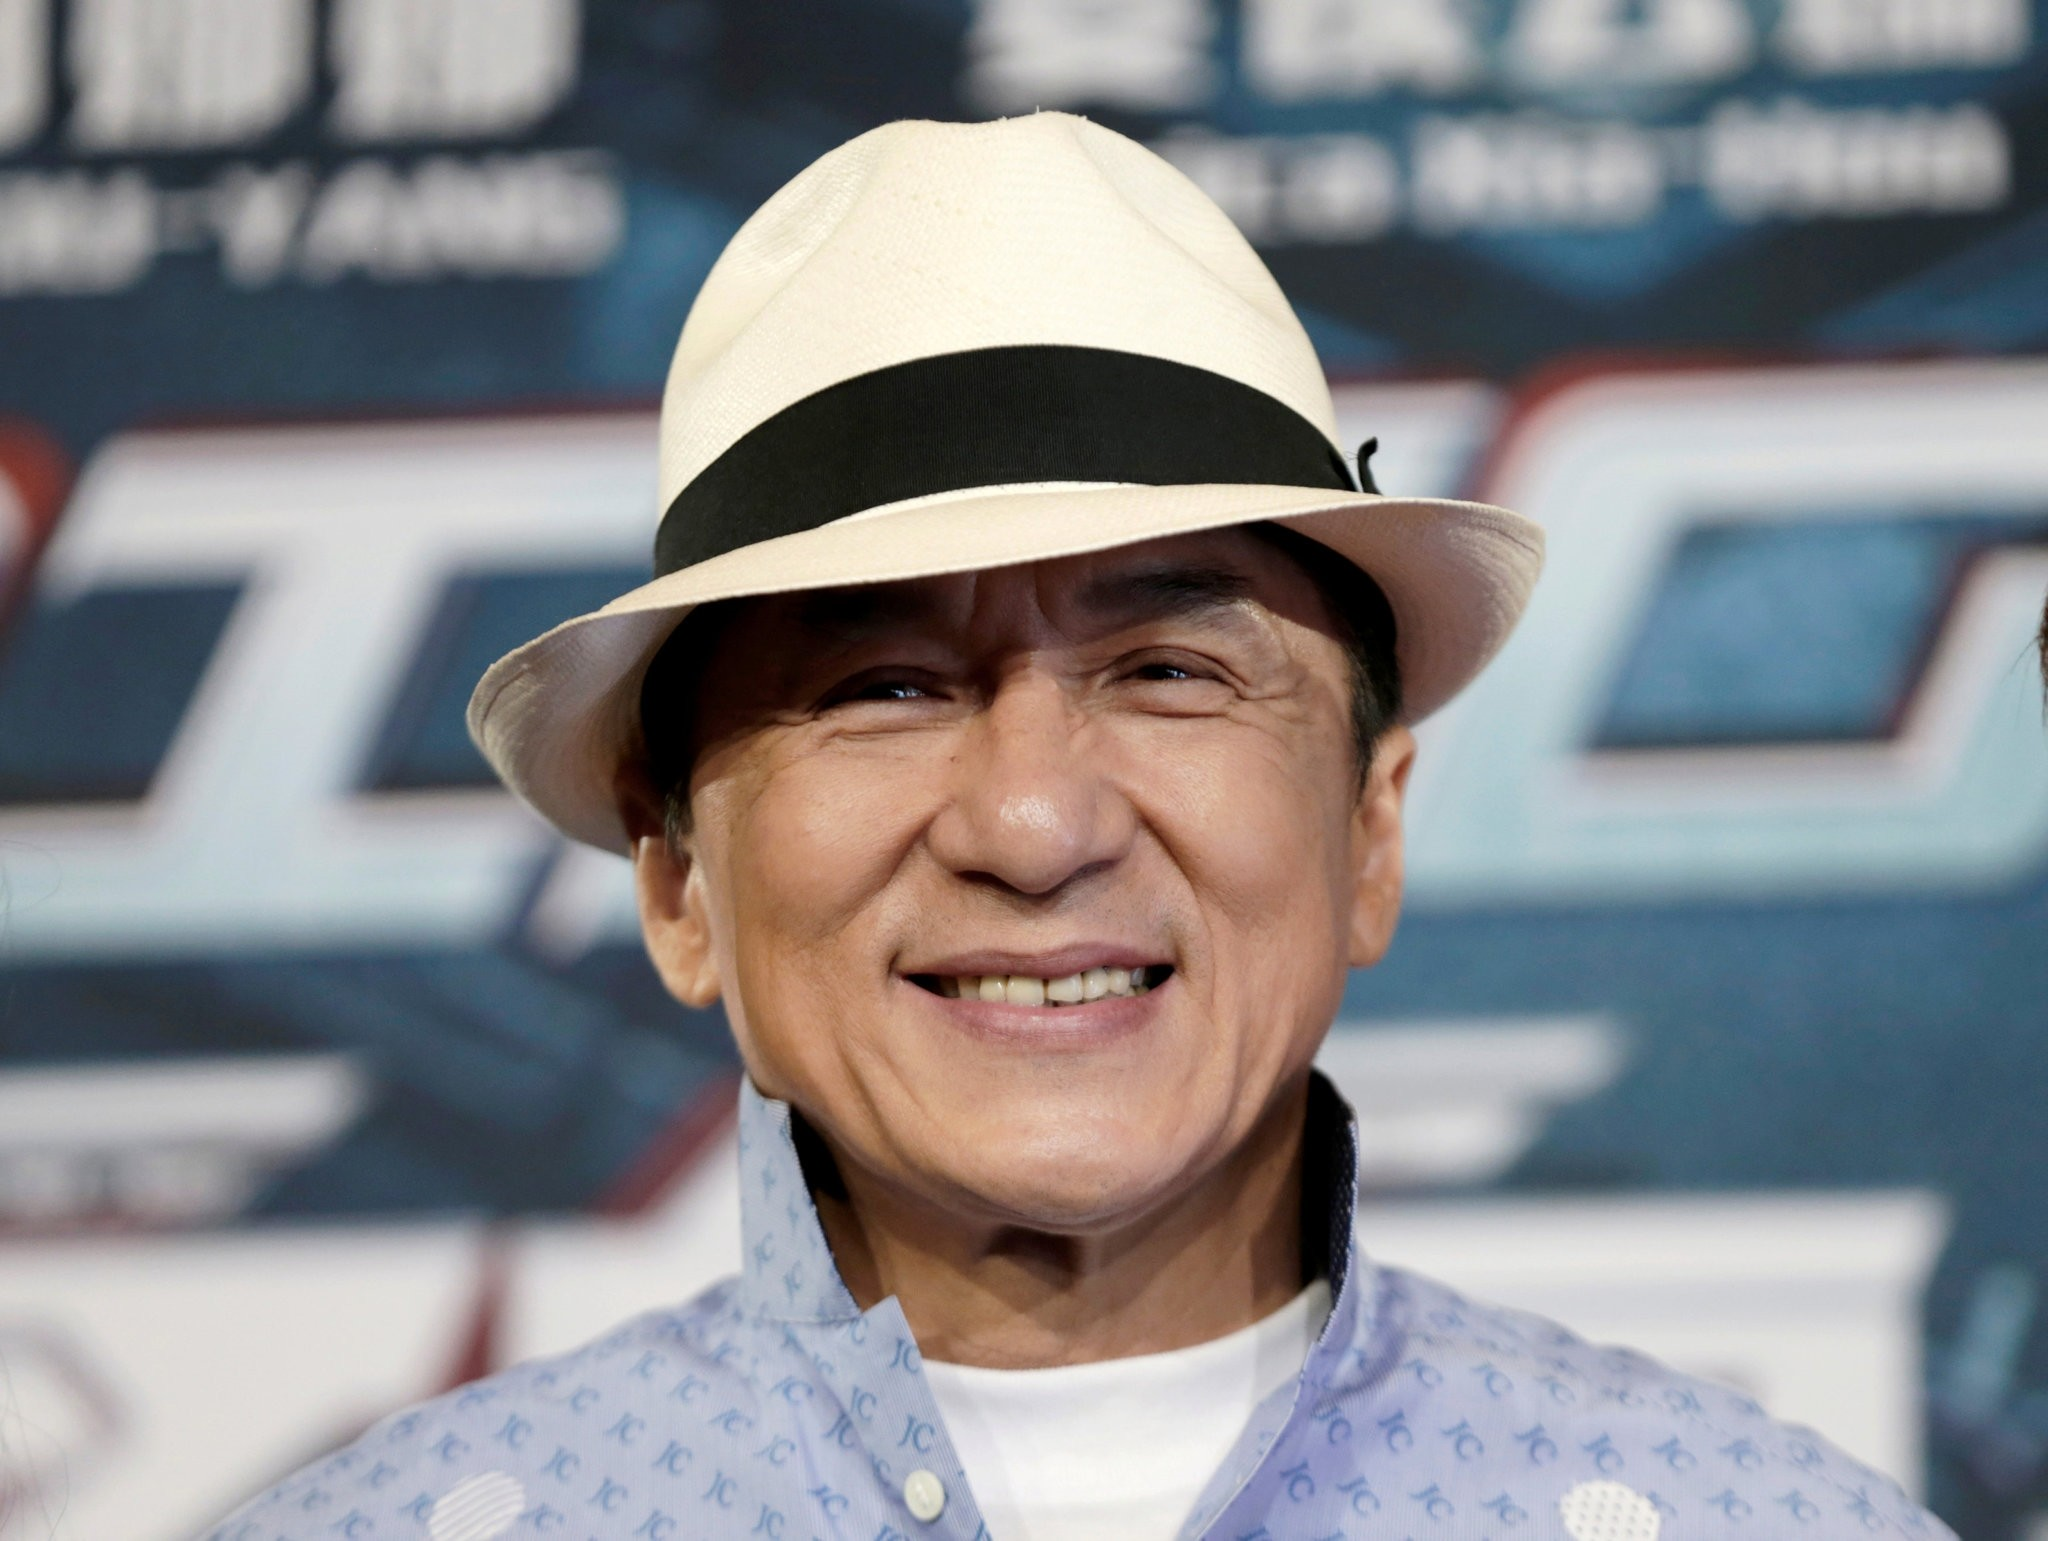 Actor Jackie Chan poses for the cameras at the announcement of the beginning of production for the science fiction action film 'Bleeding Steel'. (REUTERS Photo)